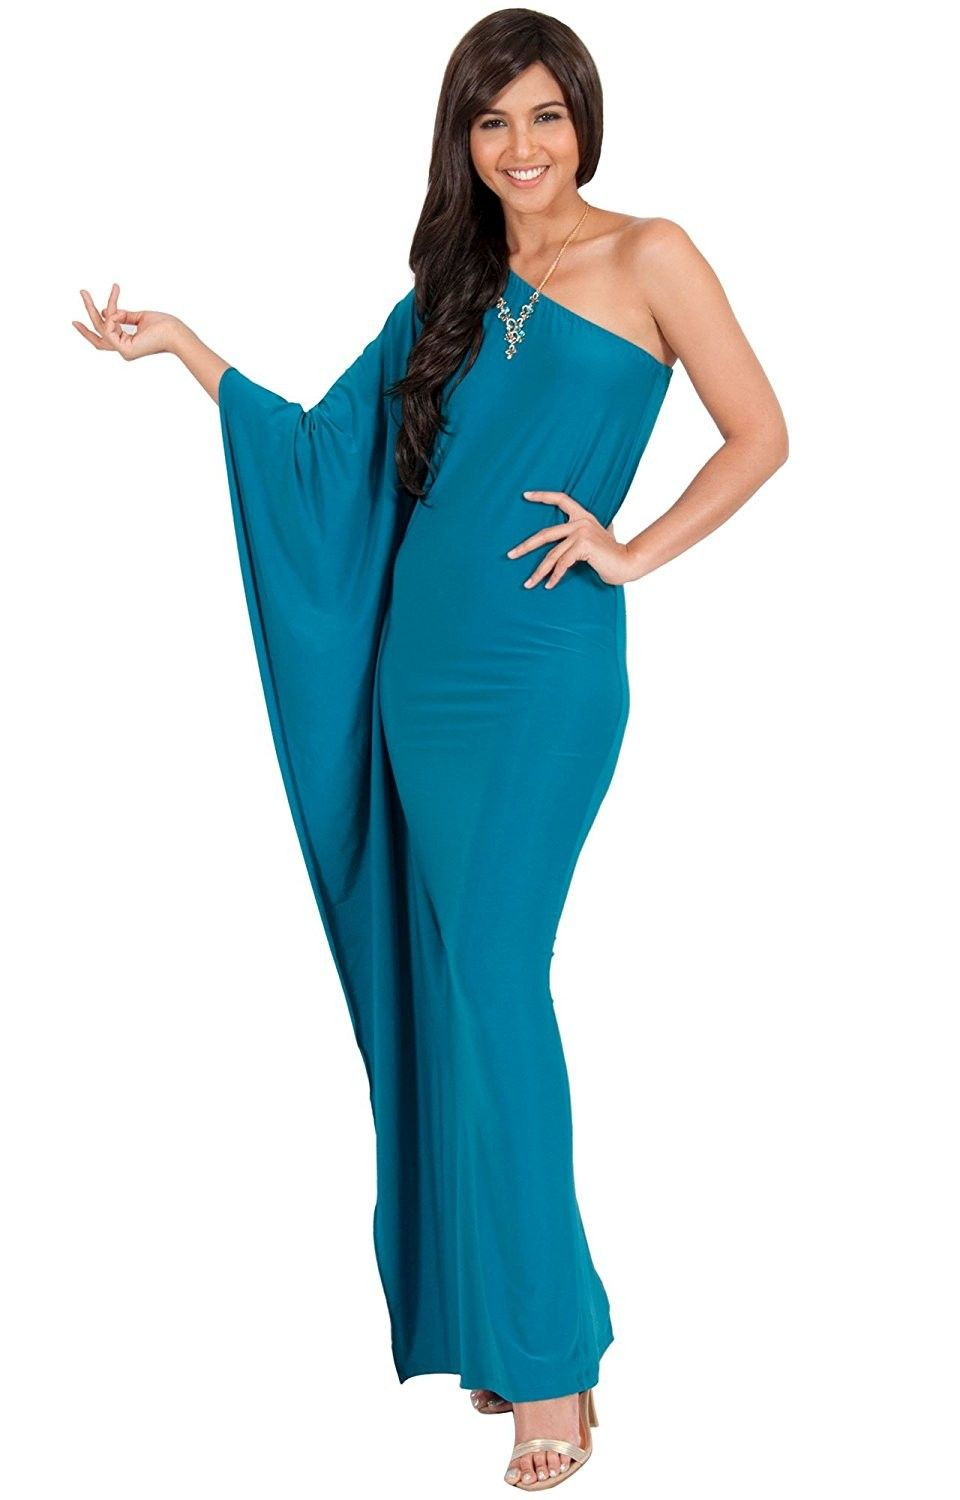 51fc6d460a0 Womens Long Sexy One Shoulder Evening Cocktail Semi Formal Maxi ...